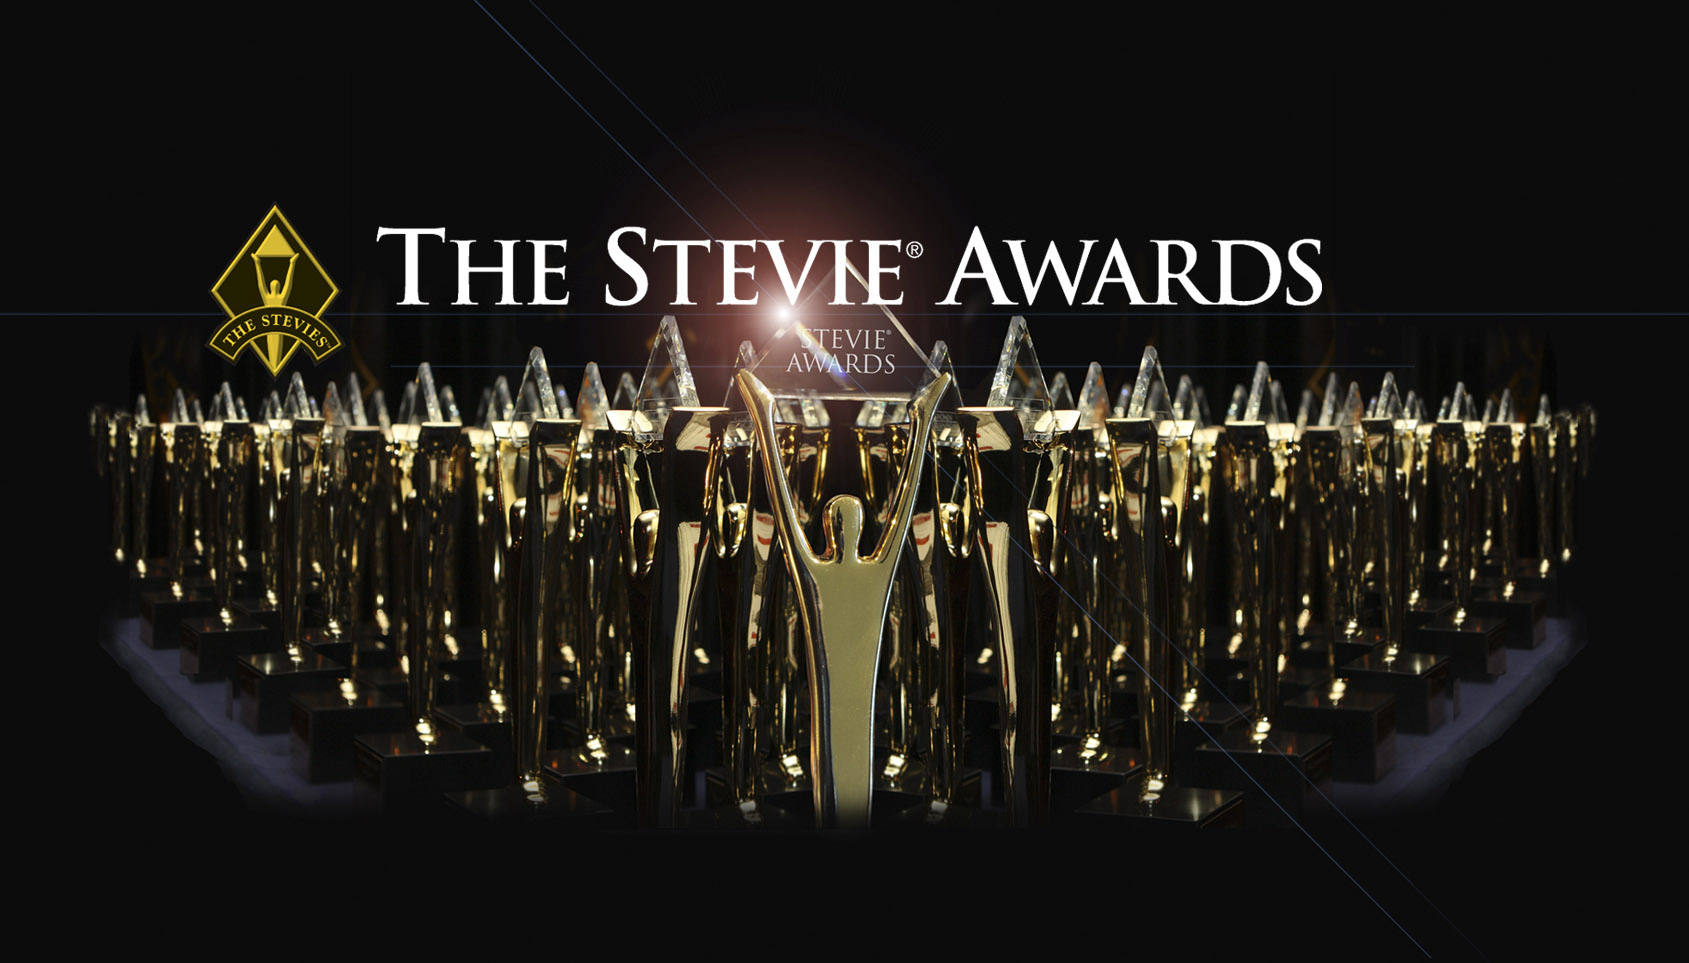 CivicPlus Technical Support Earns Stevie Award Recognition for Second Straight Year